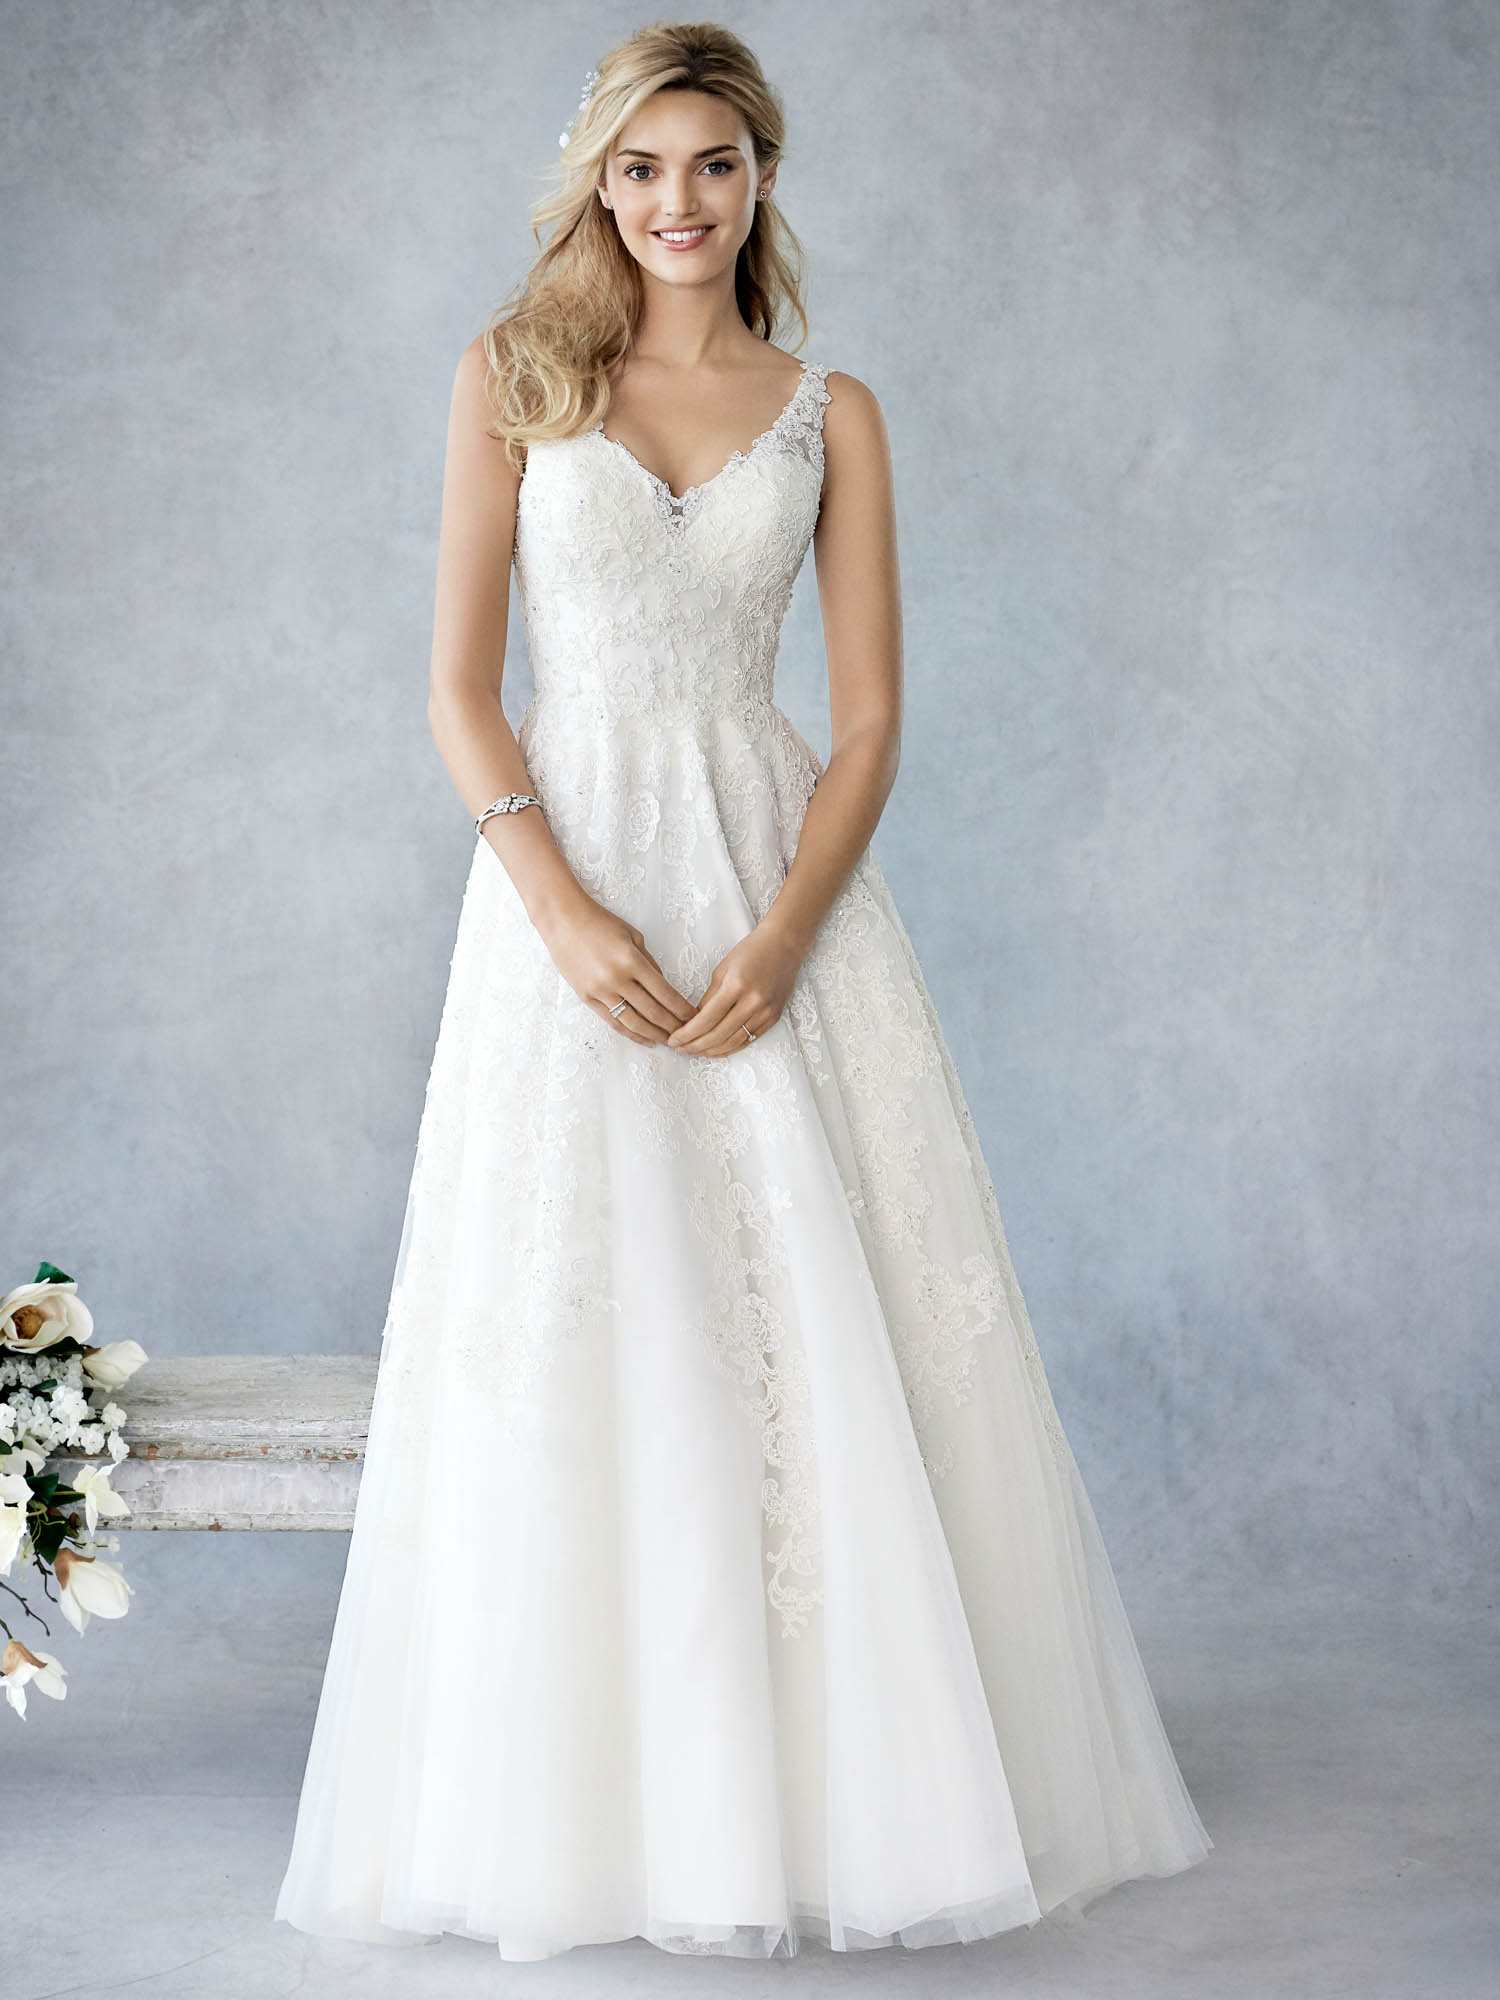 Amazing 2000 Wedding Dress Ideas - Wedding Dress Ideas ...